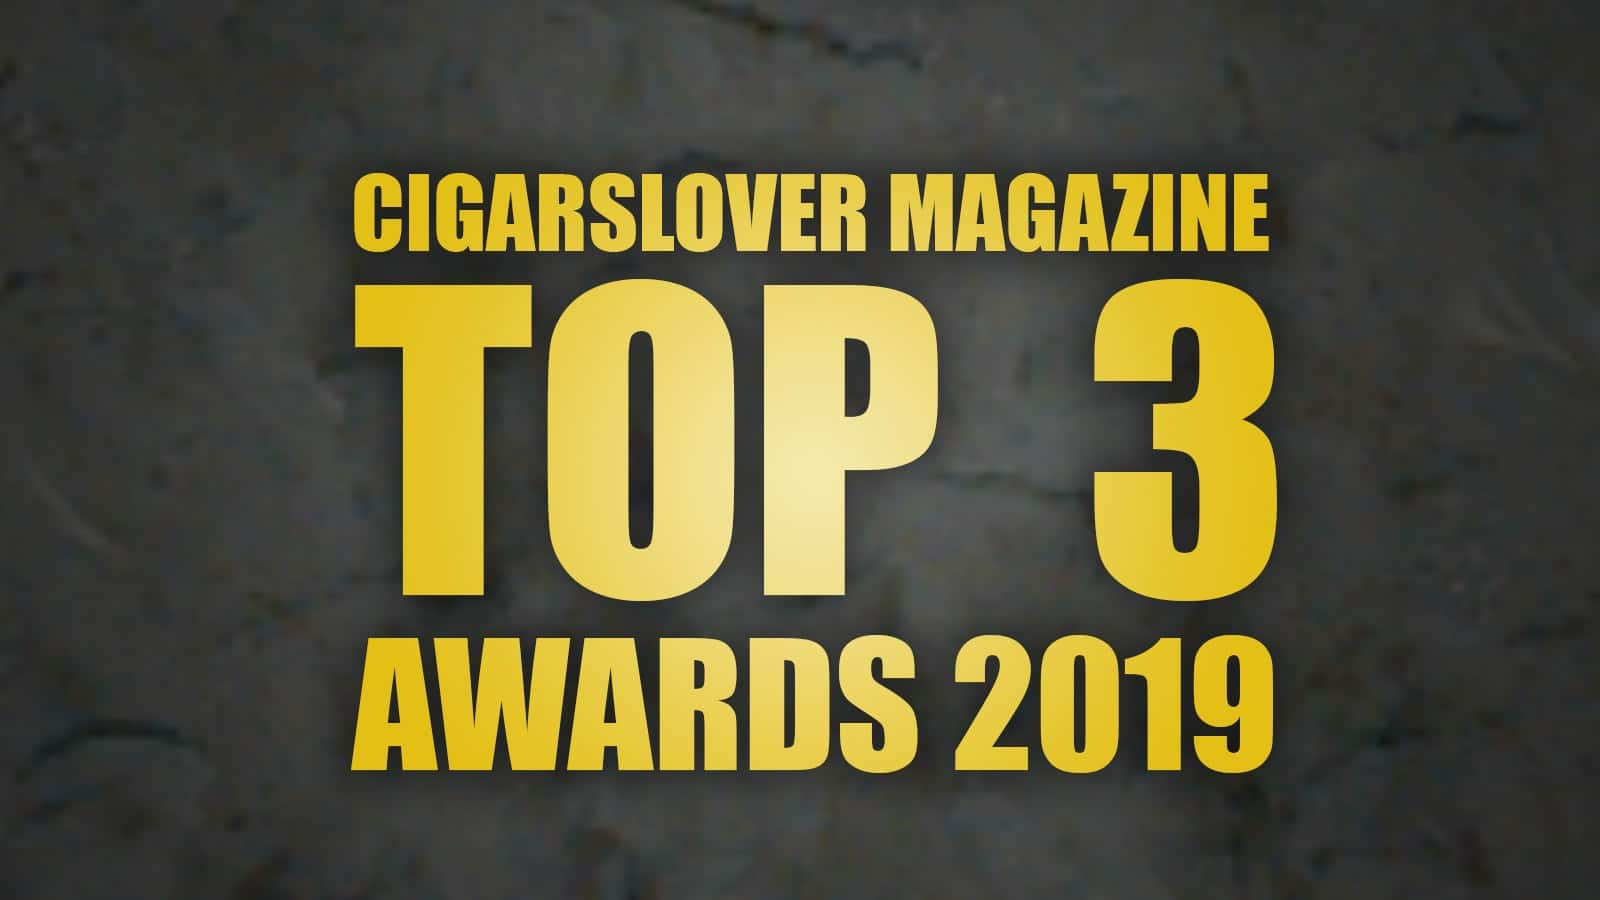 AWARDS 2019 - Svelati i TOP3